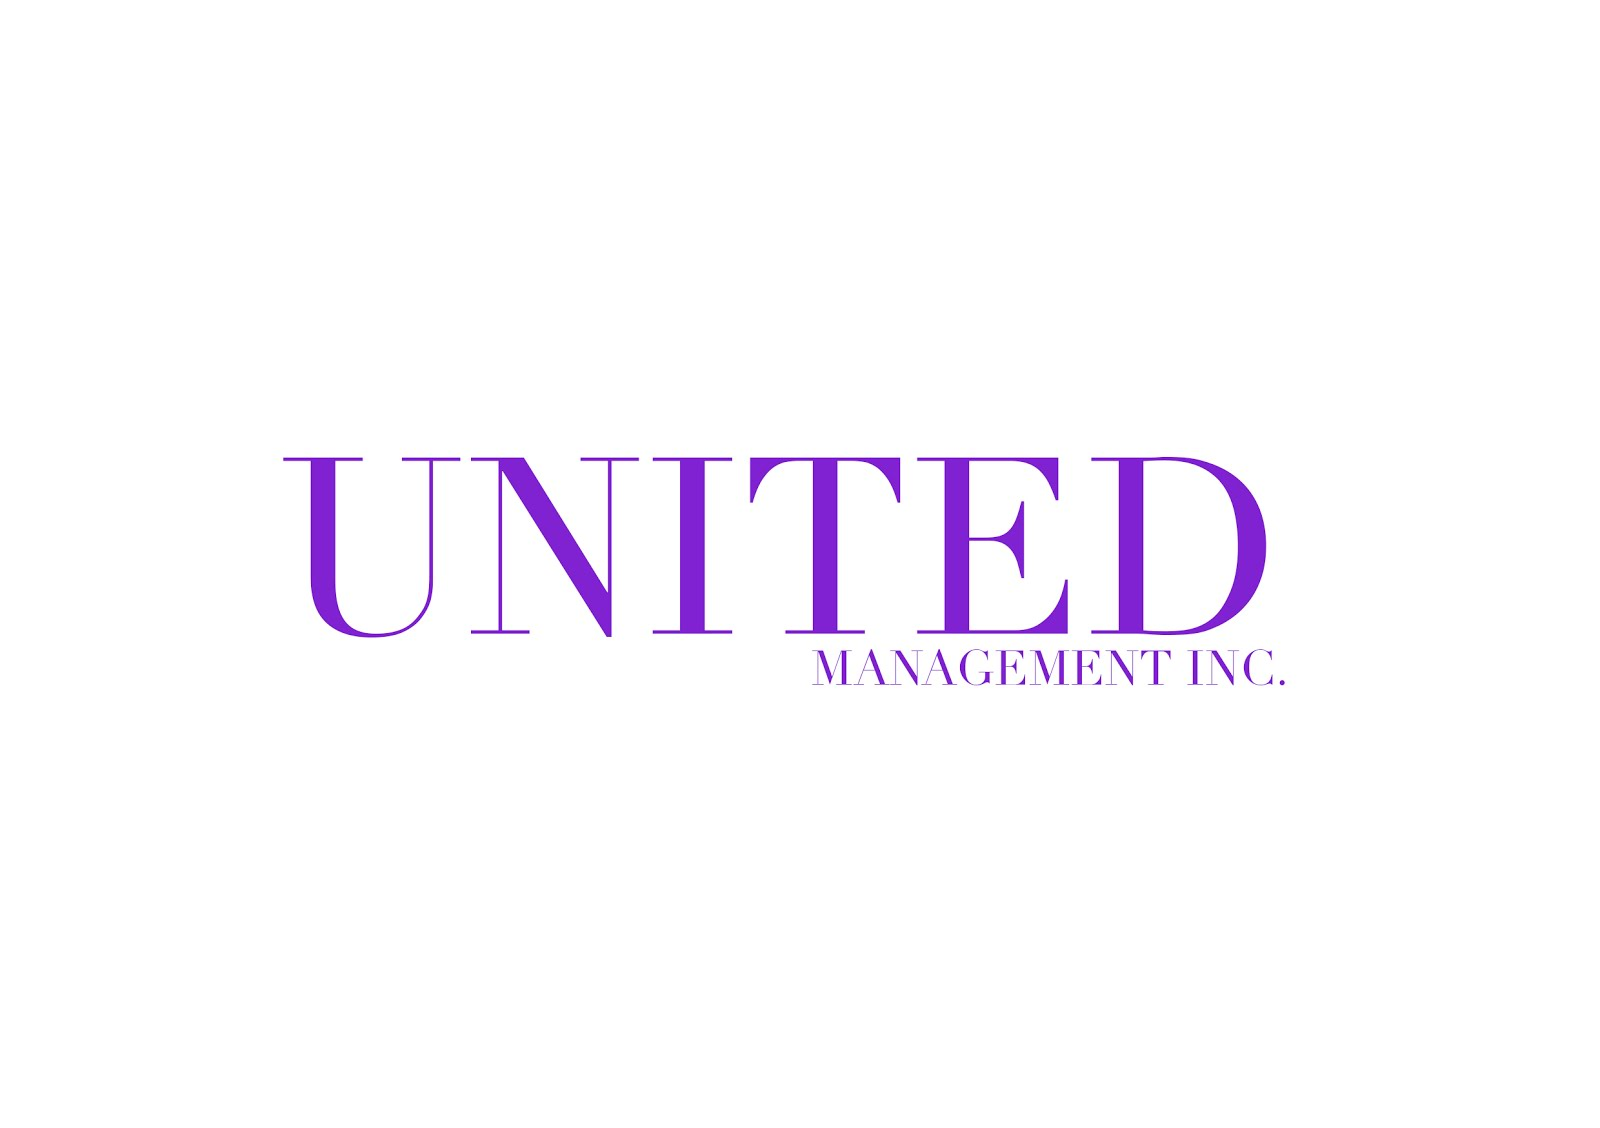 United Management Inc